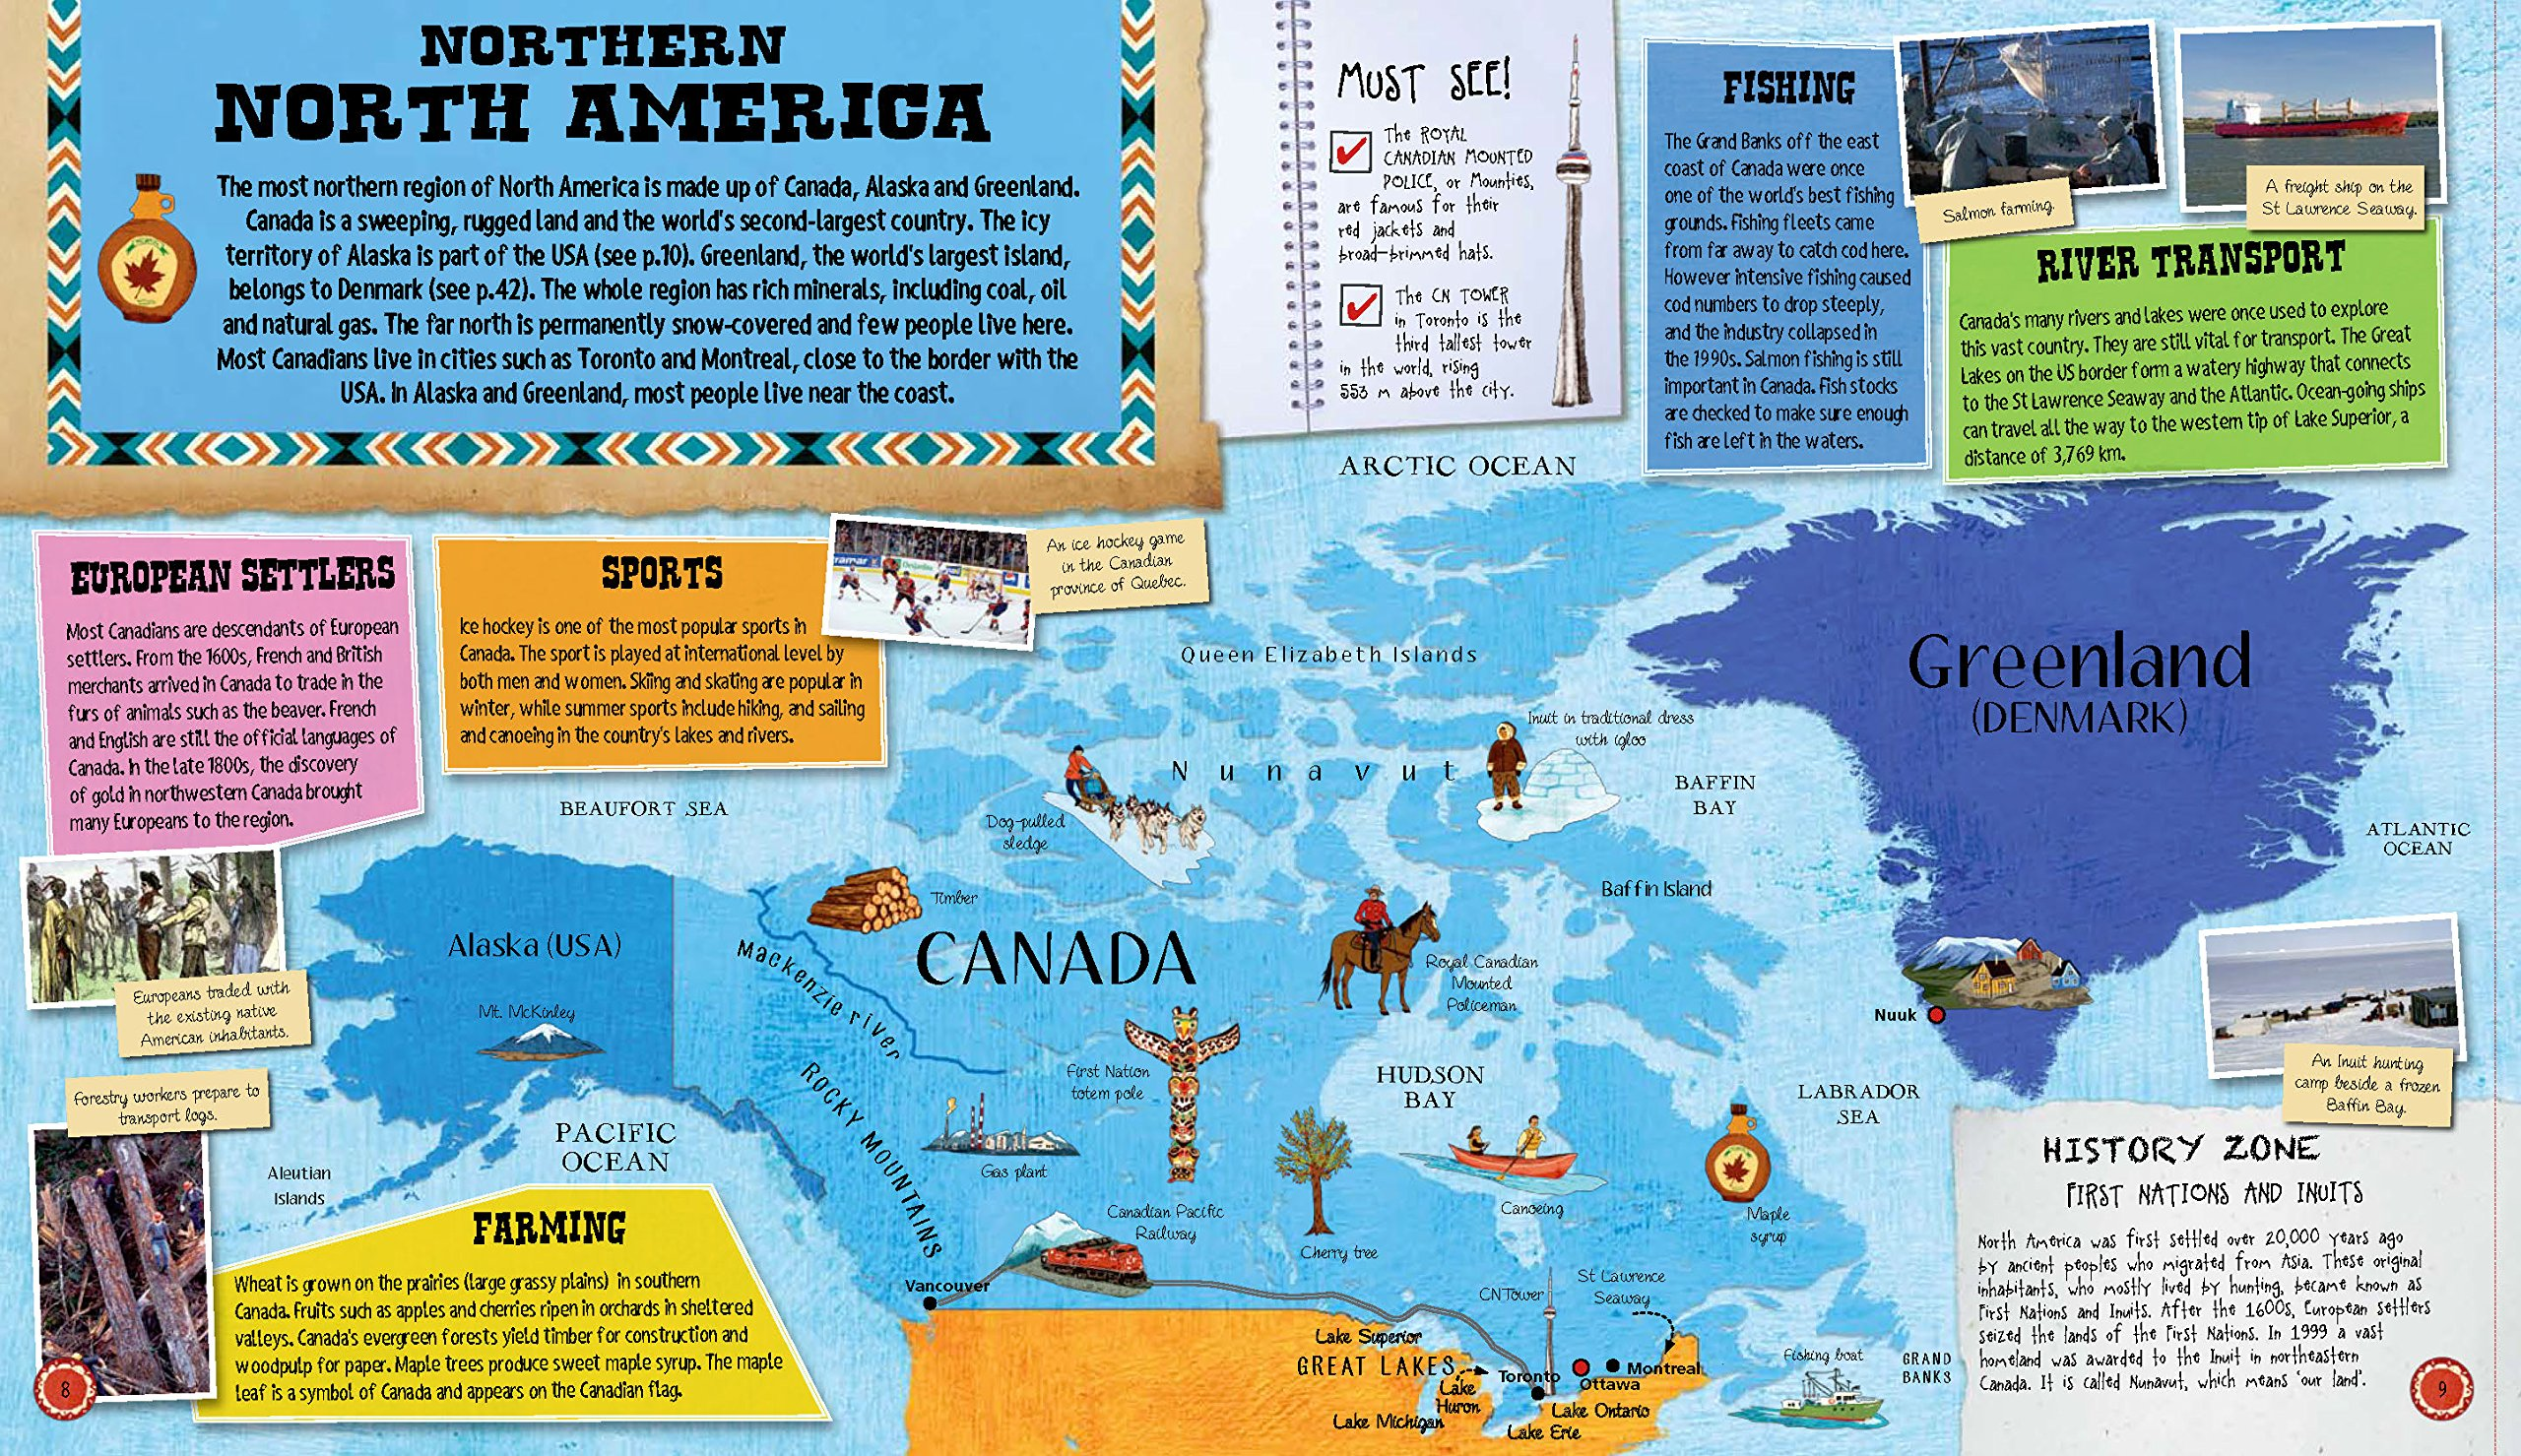 Barrons Amazing FactPacked FoldOut Atlas of the World With